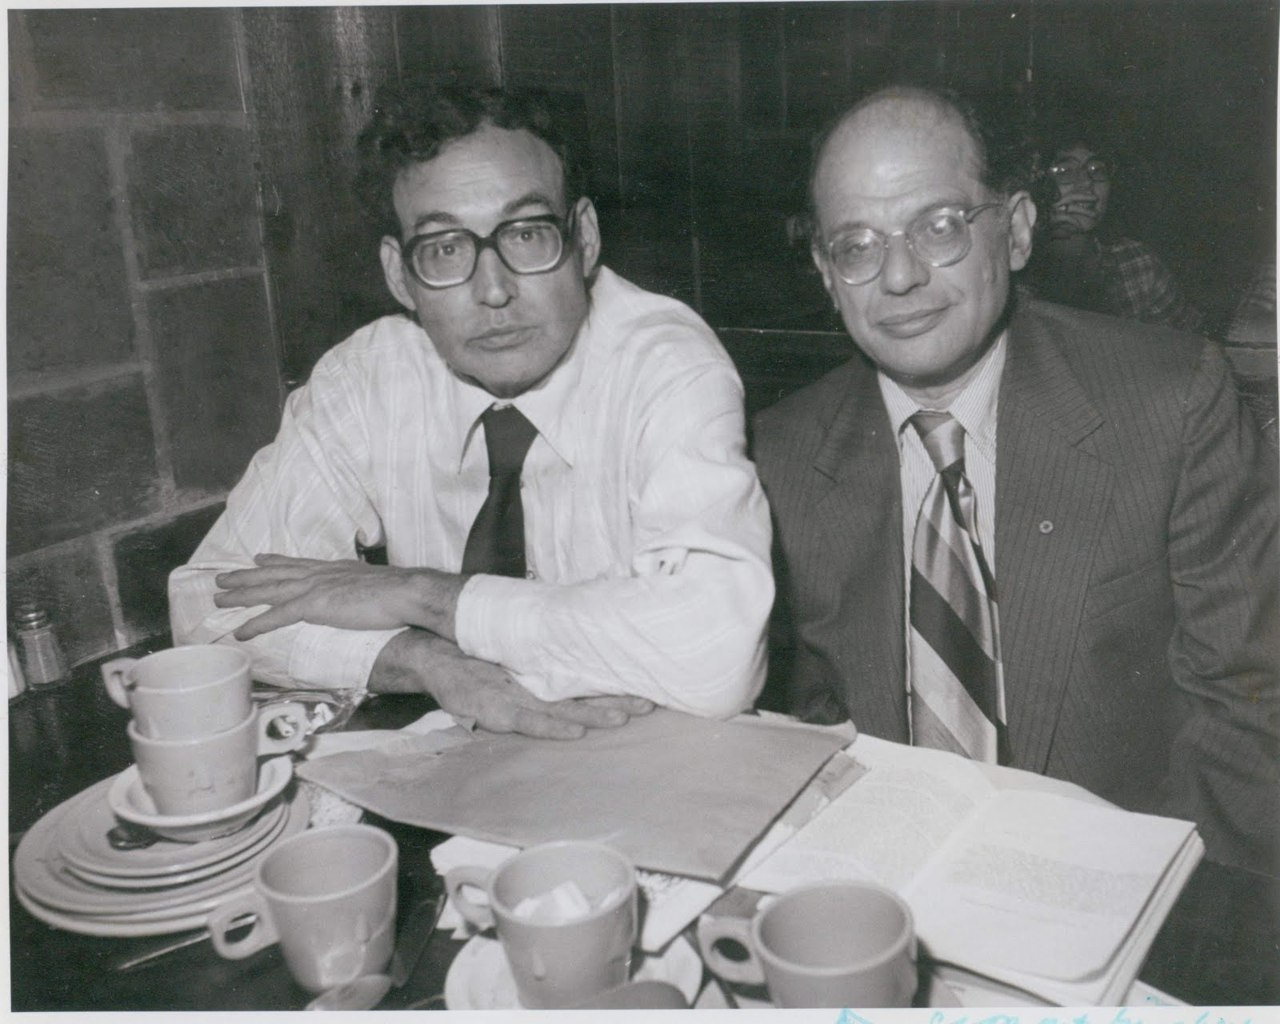 Carl Solomon and Allen Ginsberg at the West End bar, New York City, 1978. c. Michael Uffer